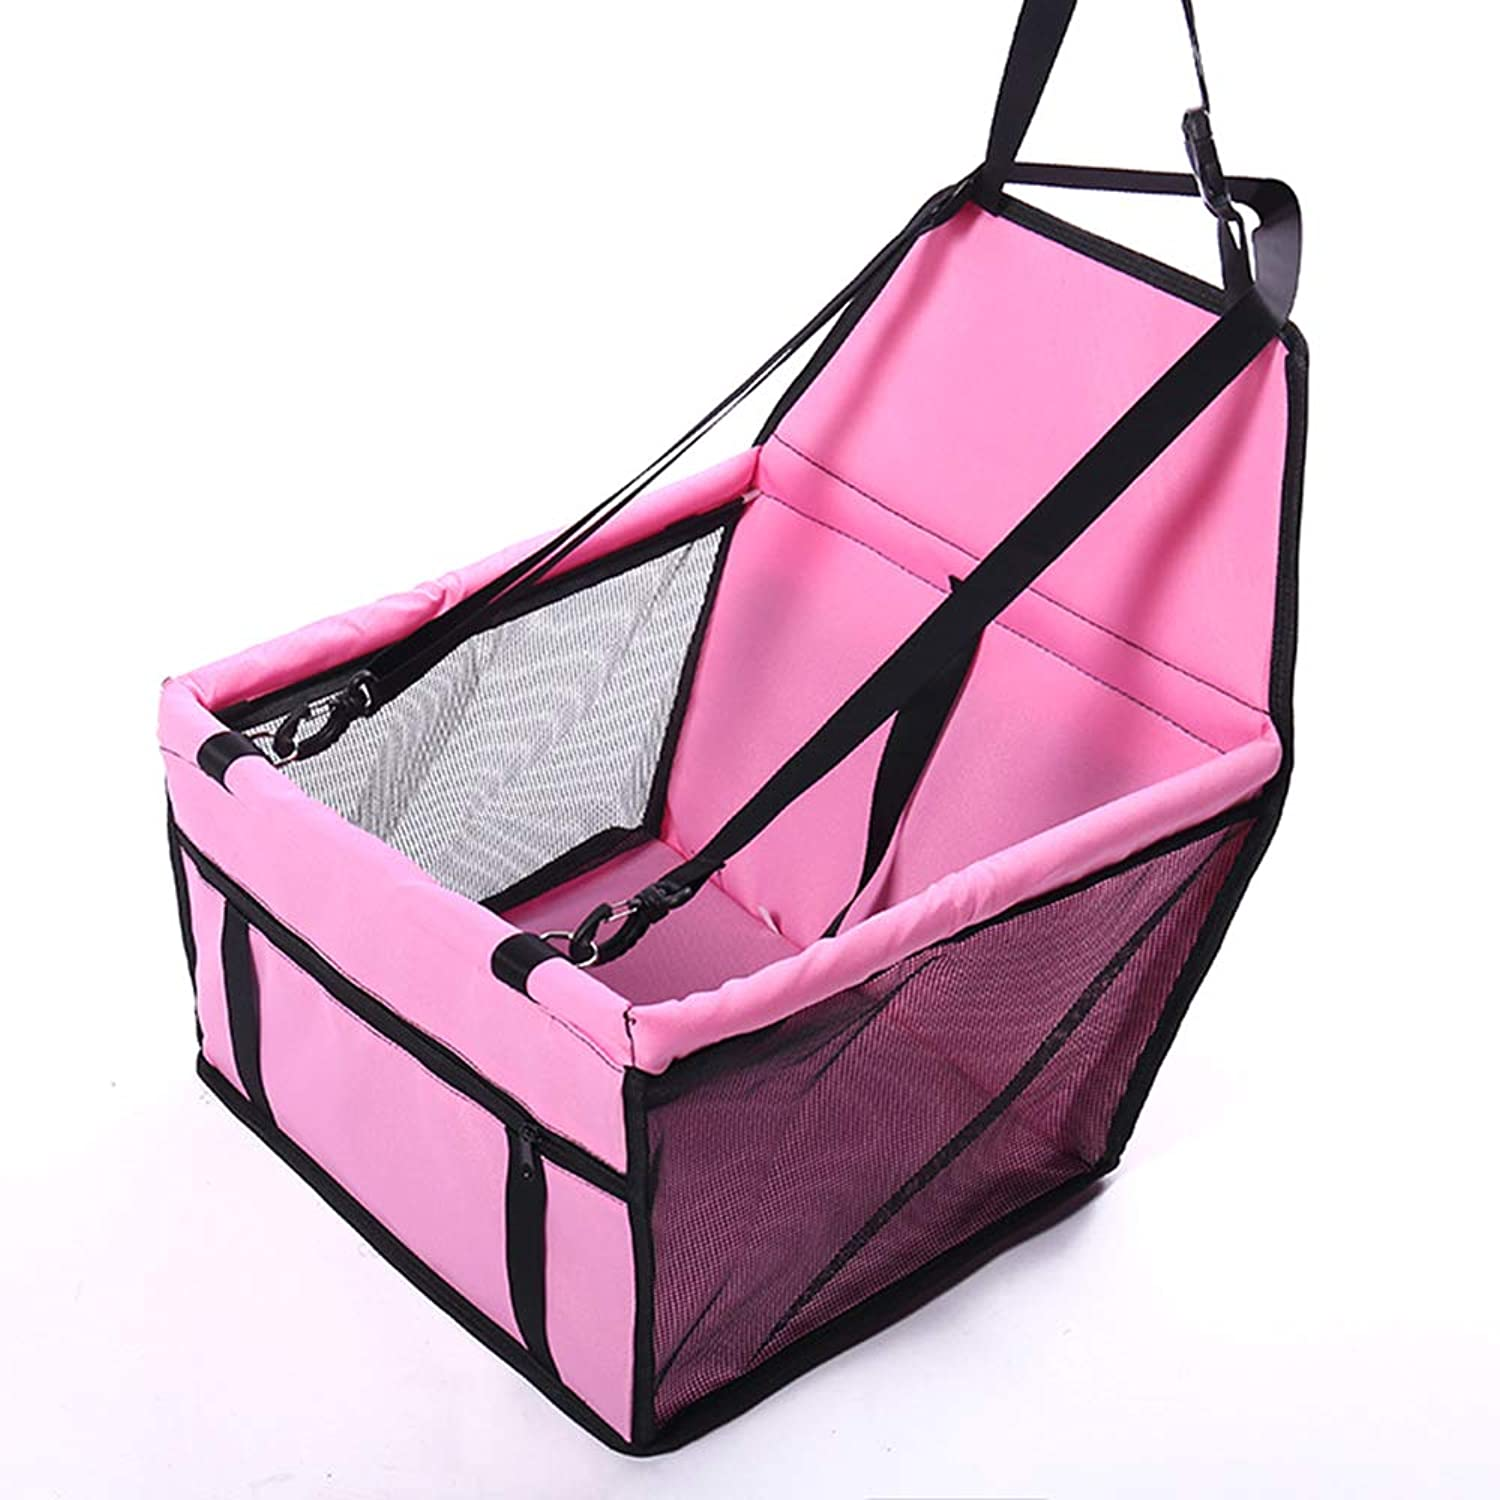 Pet Car Booster Seat with Safety Leash,Waterproof Travel Storage Bag Playpen Use for Small Dogs & Cats,5